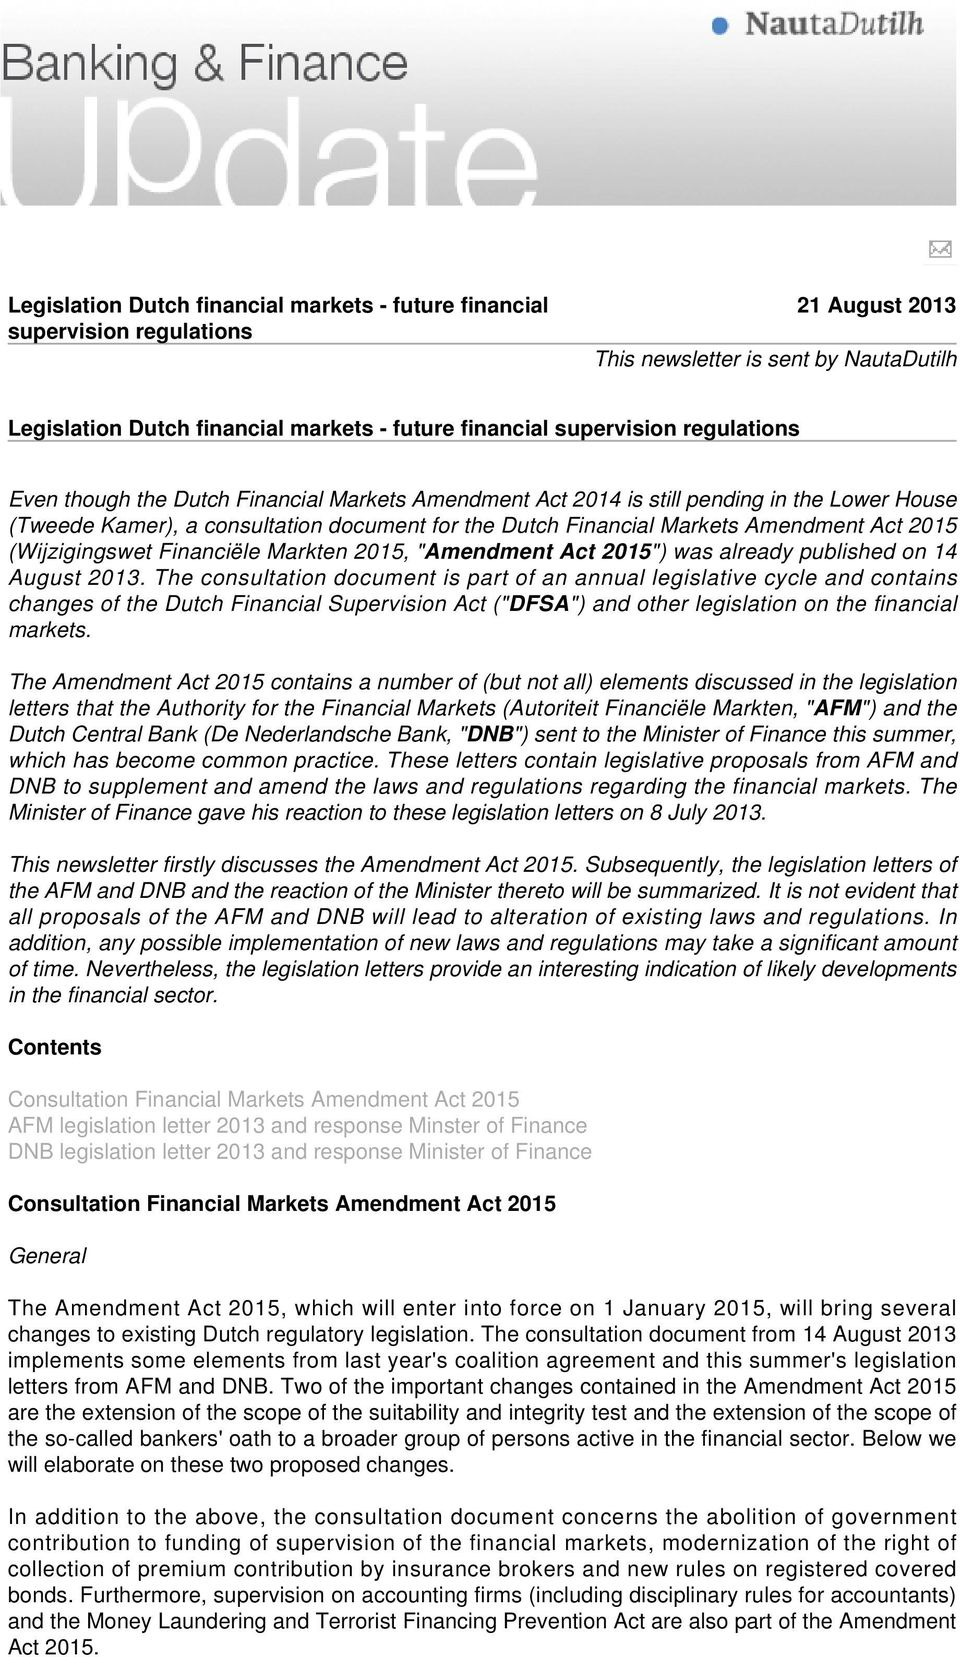 "(Wijzigingswet Financiële Markten 2015, ""Amendment Act 2015"") was already published on 14 August 2013."